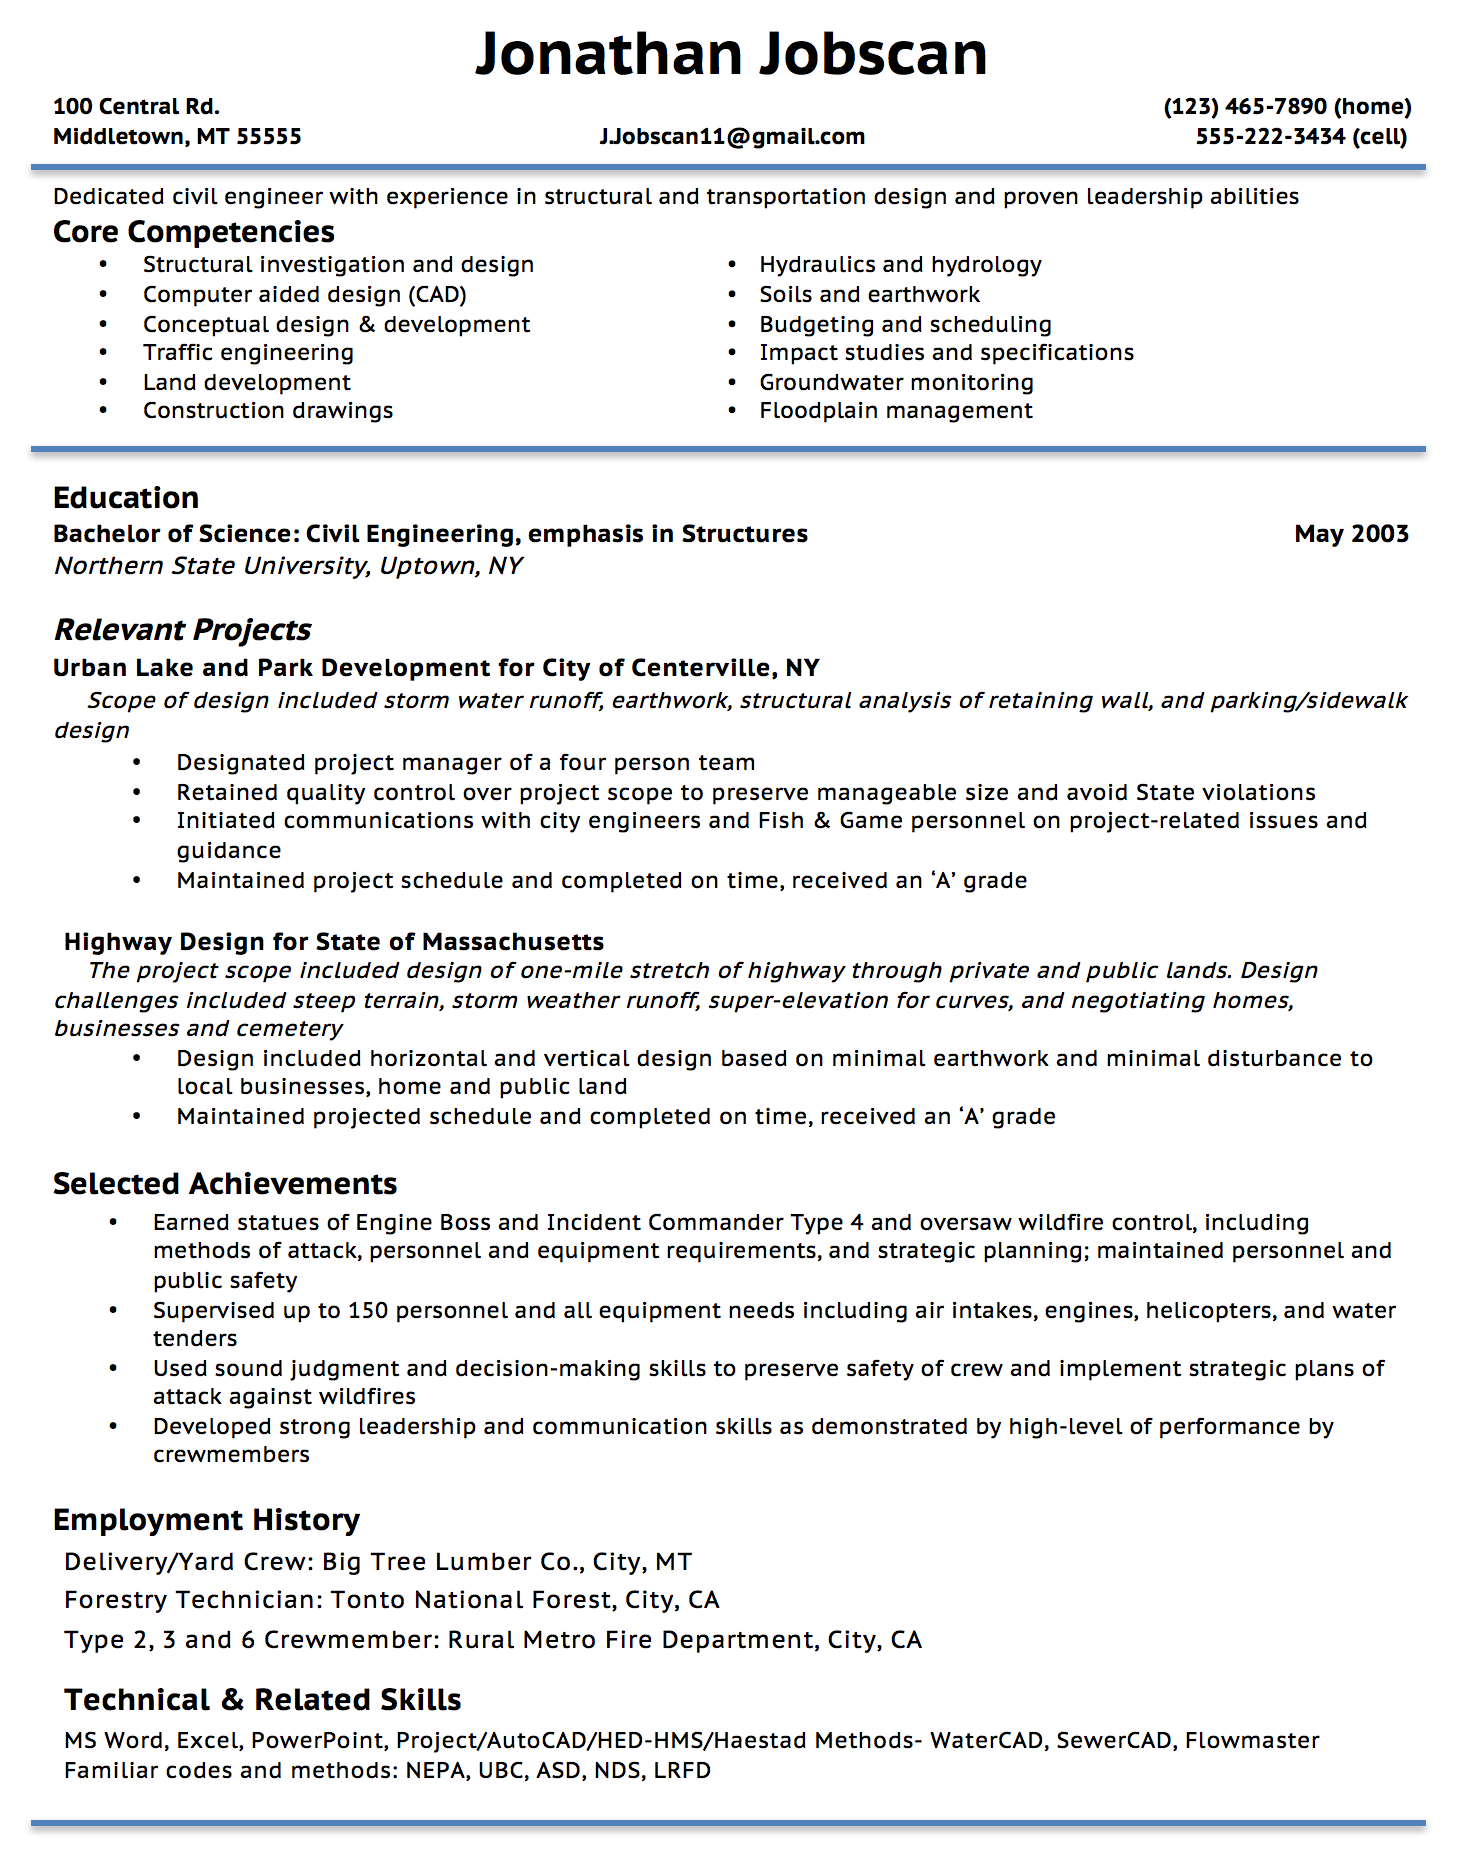 Opposenewapstandardsus  Inspiring Resume Writing Guide  Jobscan With Remarkable Example Of A Functional Resume Format With Adorable Free Basic Resume Templates Download Also The Best Resume Ever In Addition Pharmacist Resume Example And Resume Build As Well As Objective To Put On A Resume Additionally Language On Resume From Jobscanco With Opposenewapstandardsus  Remarkable Resume Writing Guide  Jobscan With Adorable Example Of A Functional Resume Format And Inspiring Free Basic Resume Templates Download Also The Best Resume Ever In Addition Pharmacist Resume Example From Jobscanco